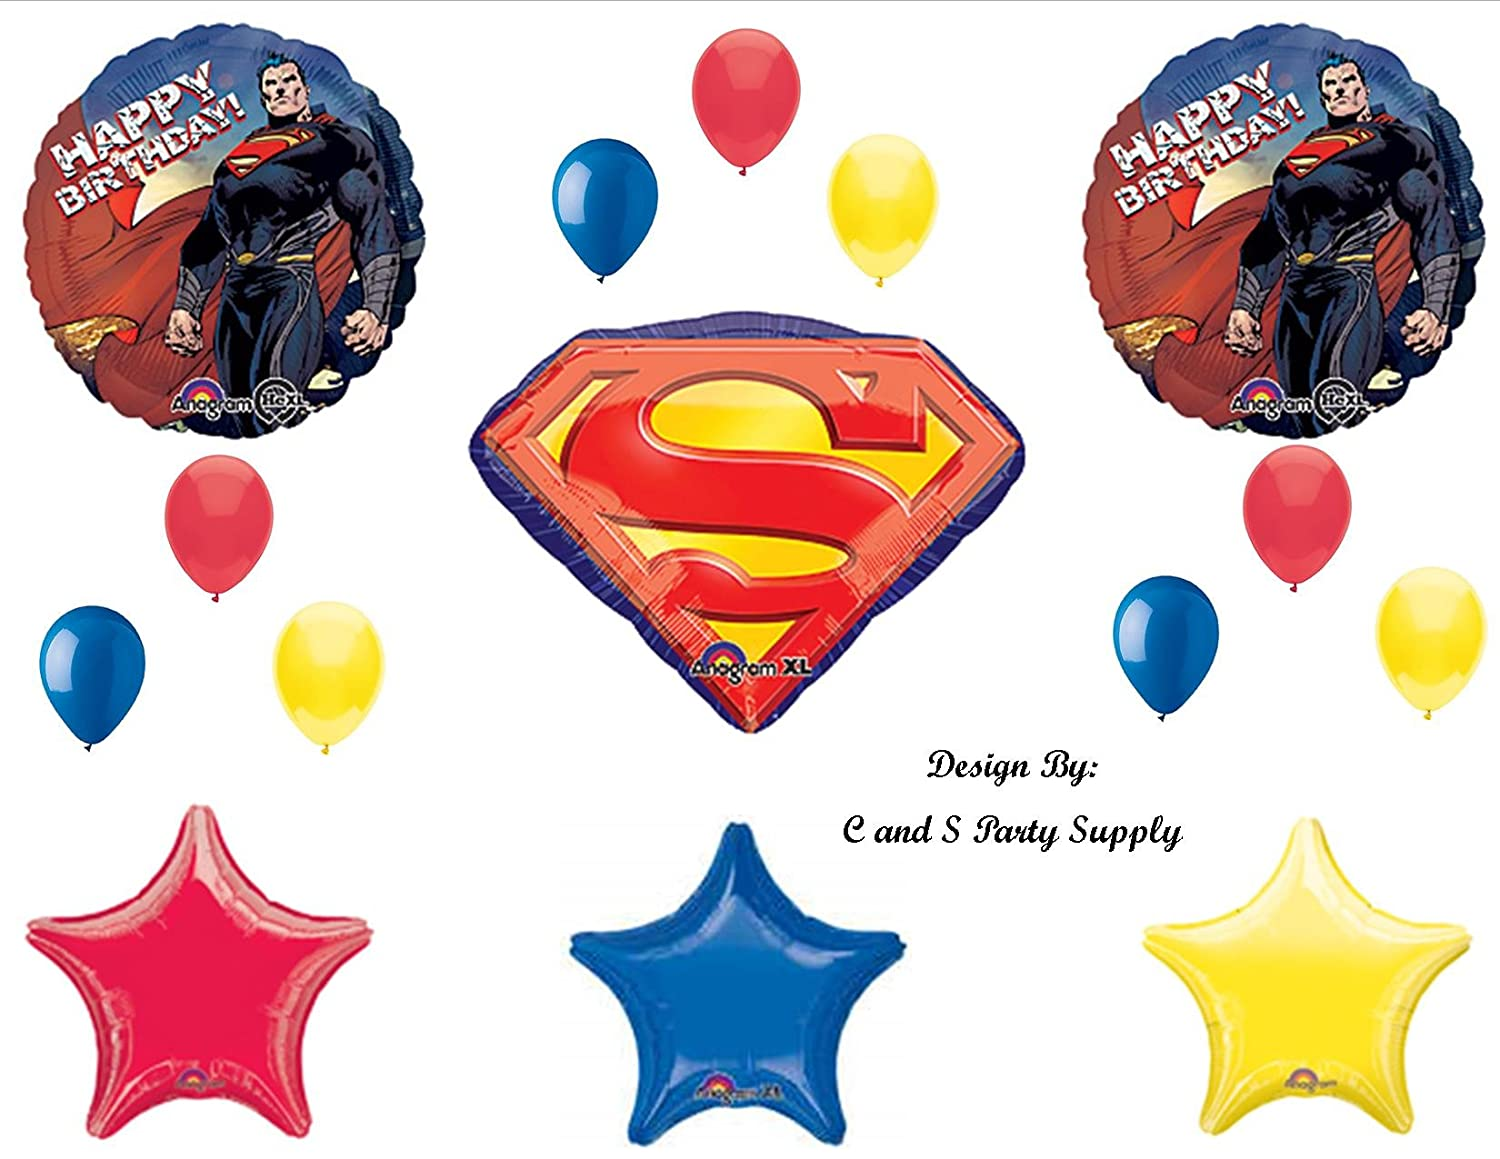 Amazon NEW SUPERMAN Man Of Steel Super Hero Happy Birthday PARTY Balloons Decorations Supplies Toys Games